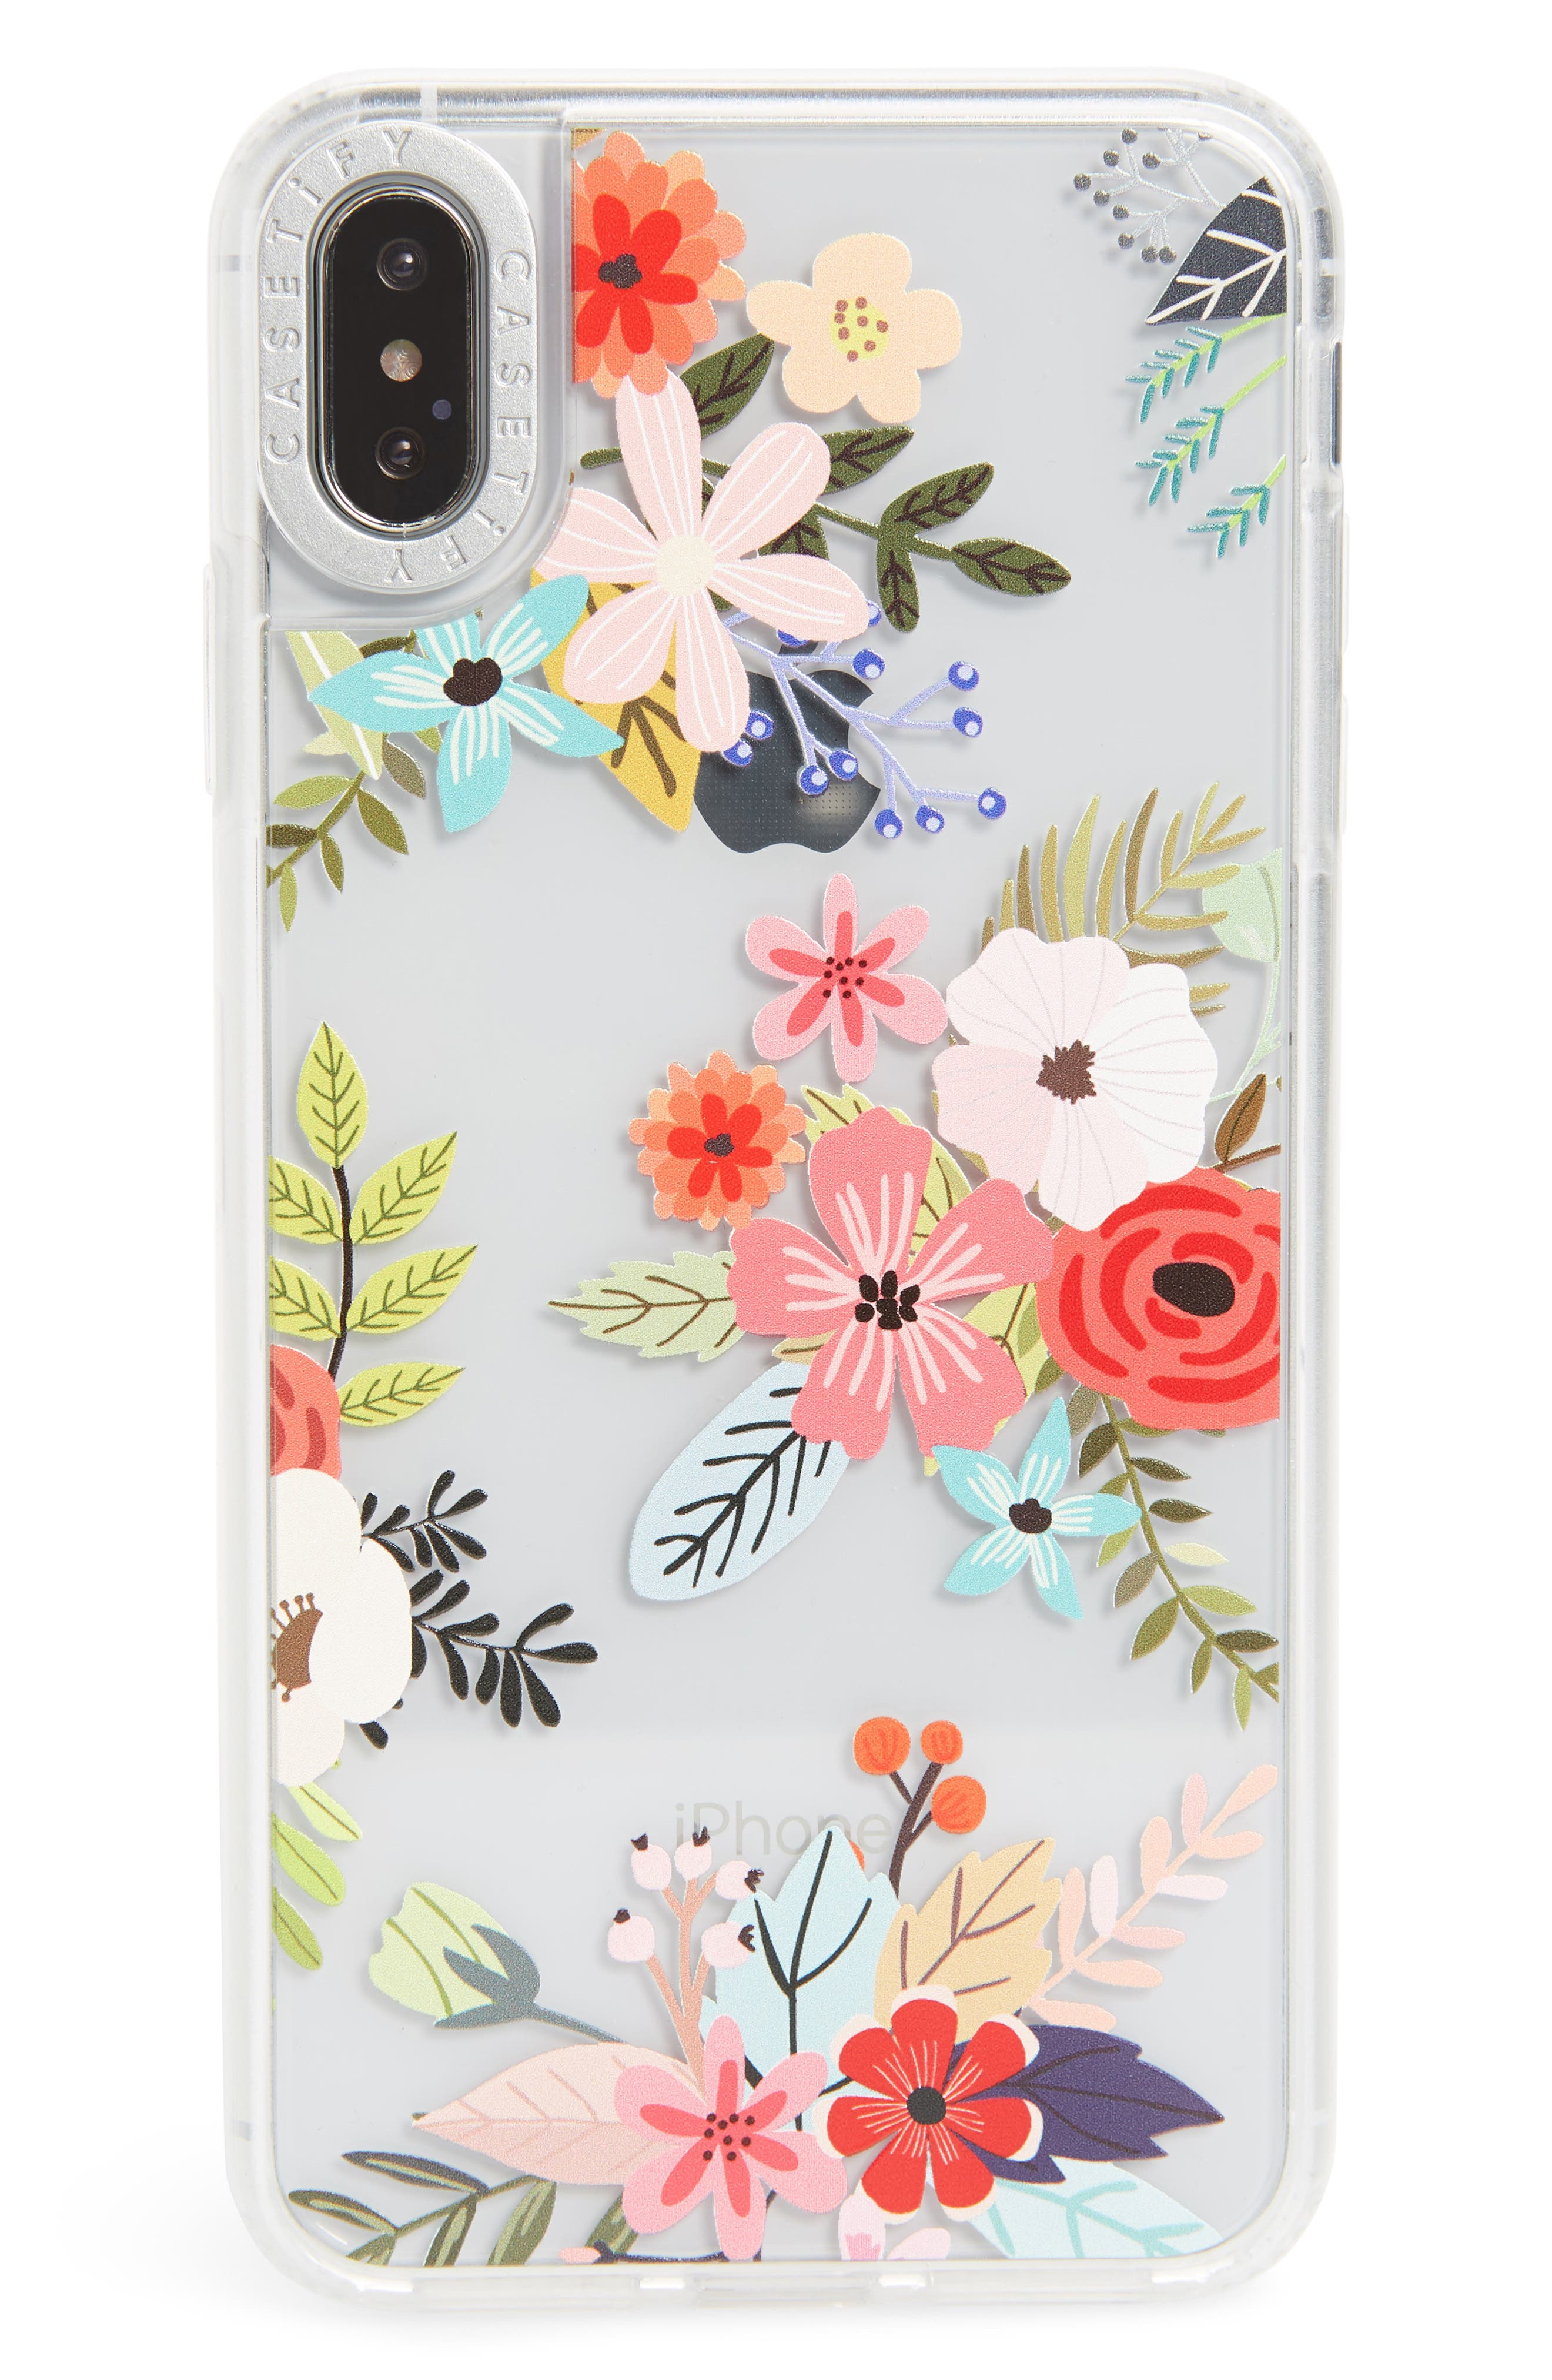 CASETIFY Floral Collage Translucent iPhone X/Xs, XR & X Max Case, Main, color, MULTI FLORAL